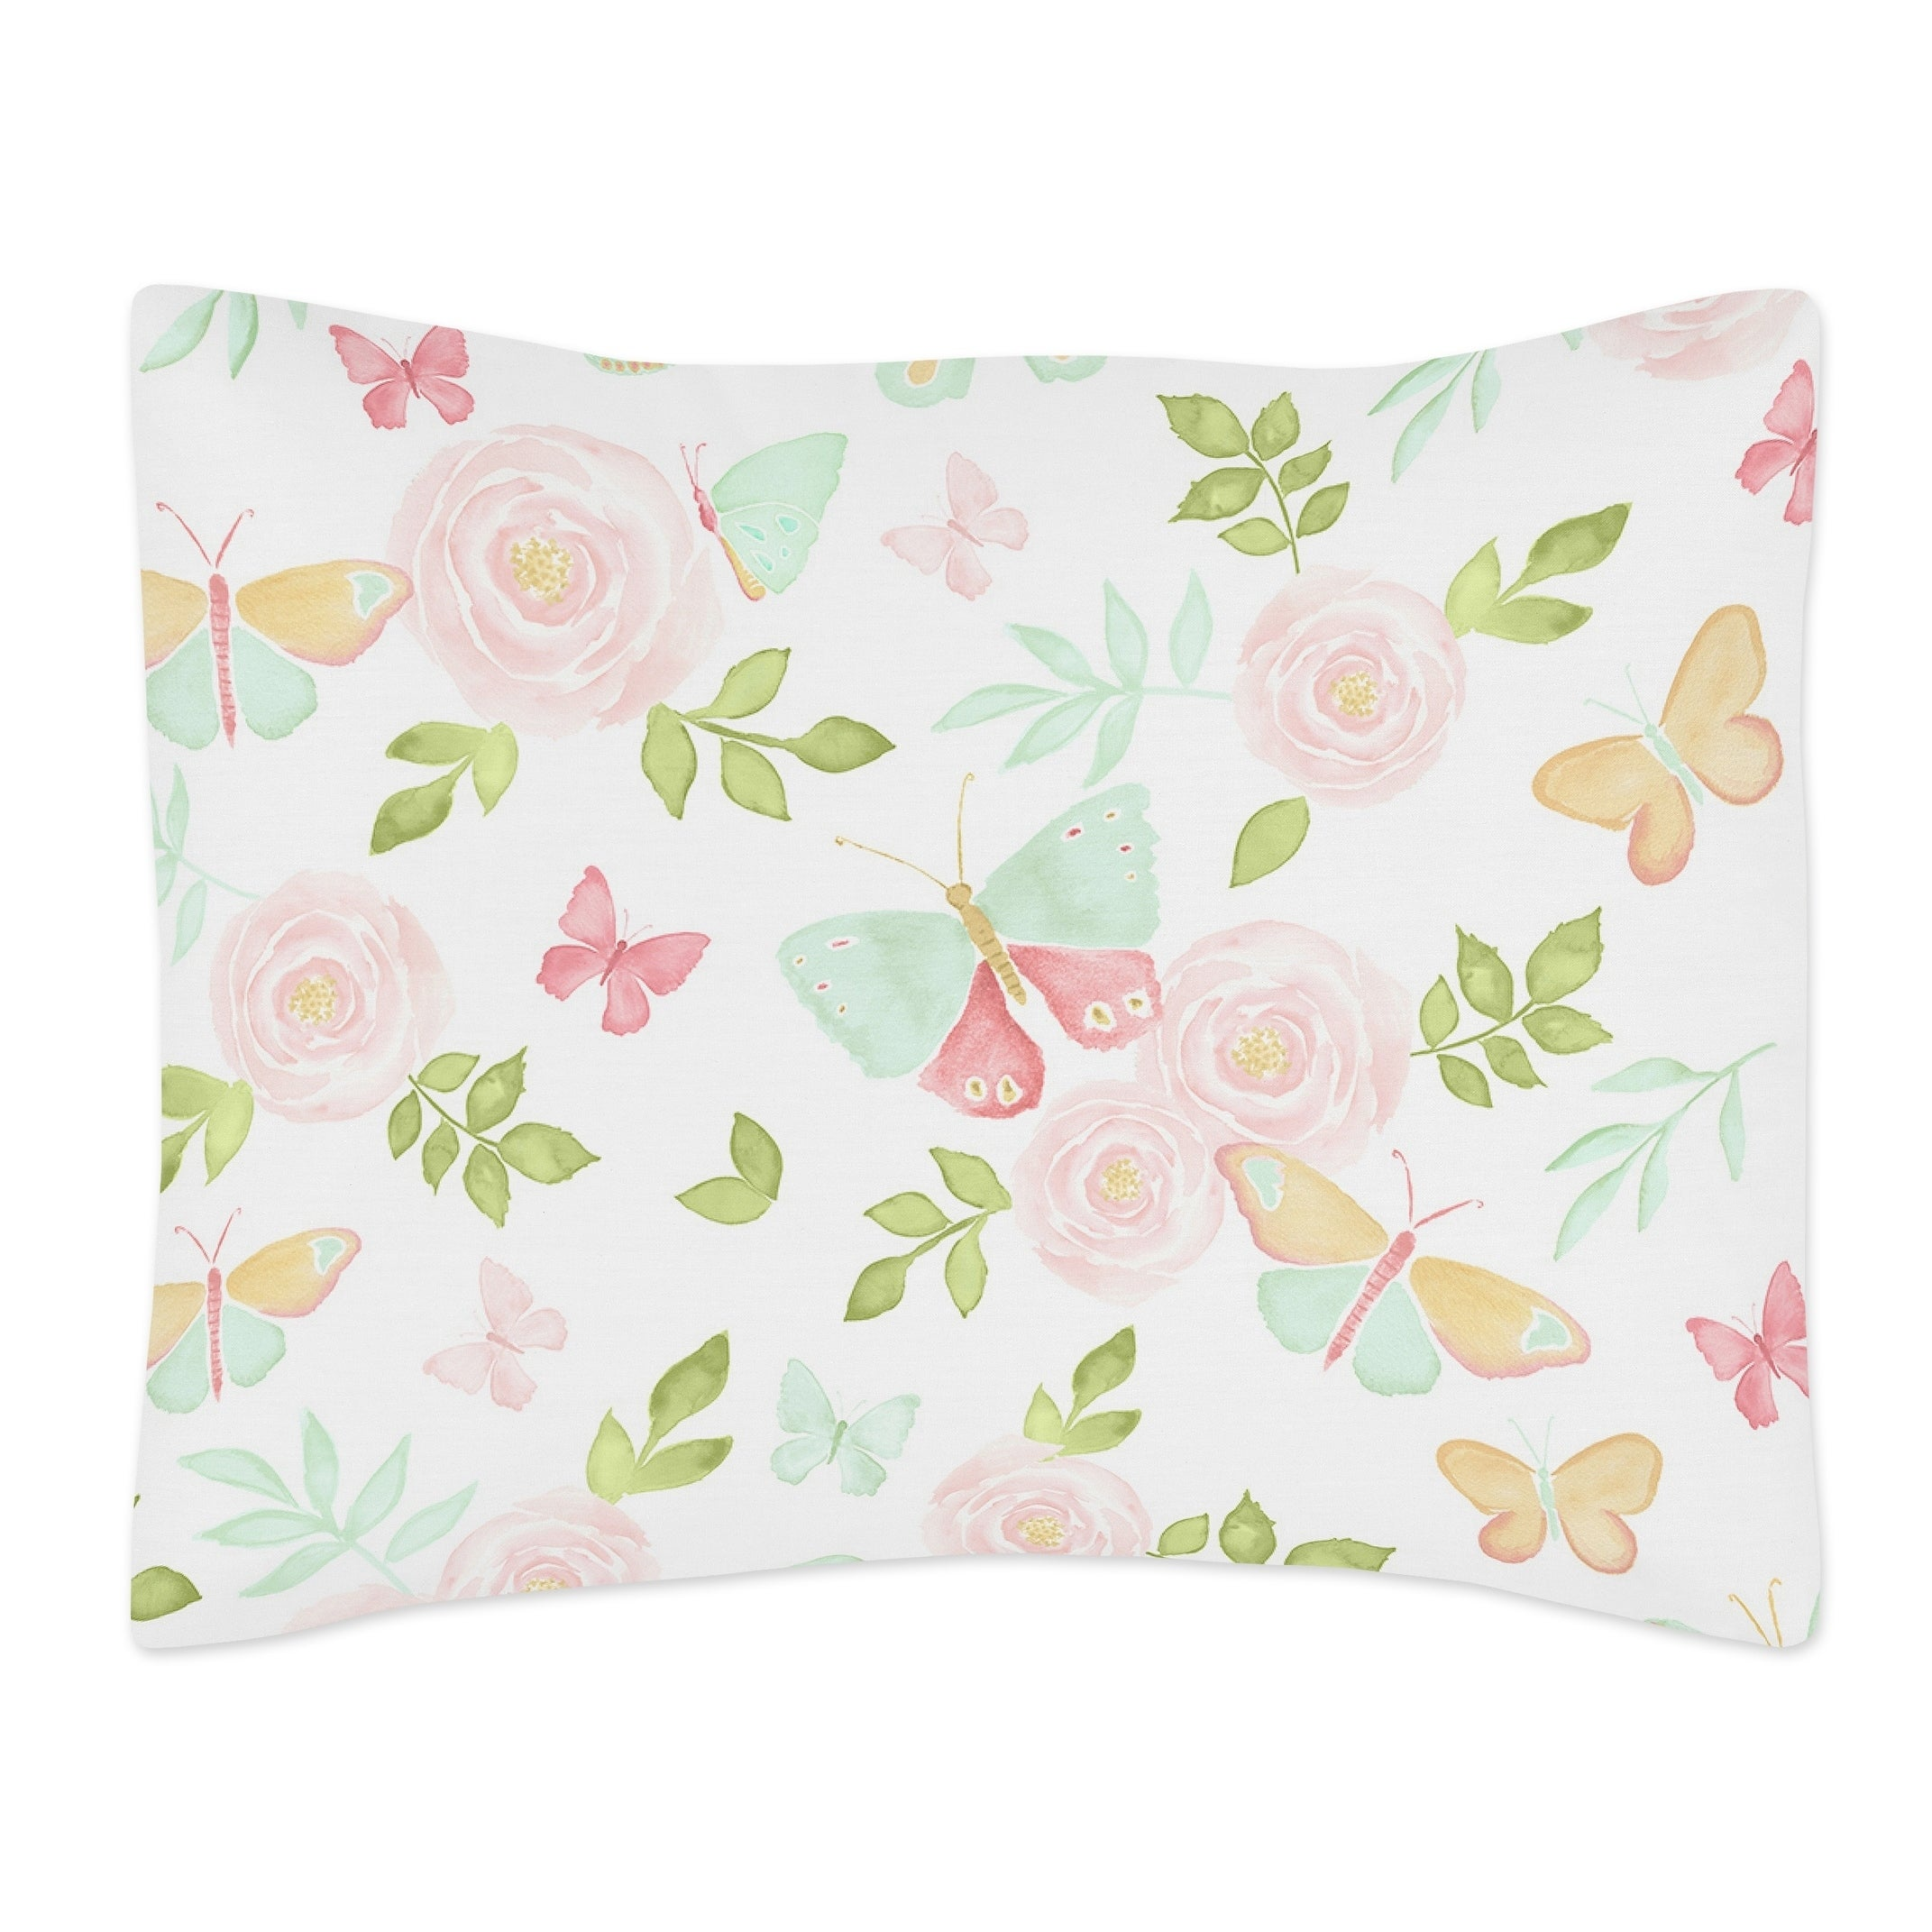 Sweet Jojo Designs Blush Pink Mint And White Watercolor Rose Butterfly Floral Collection Standard Pillow Sham Overstock 23089391